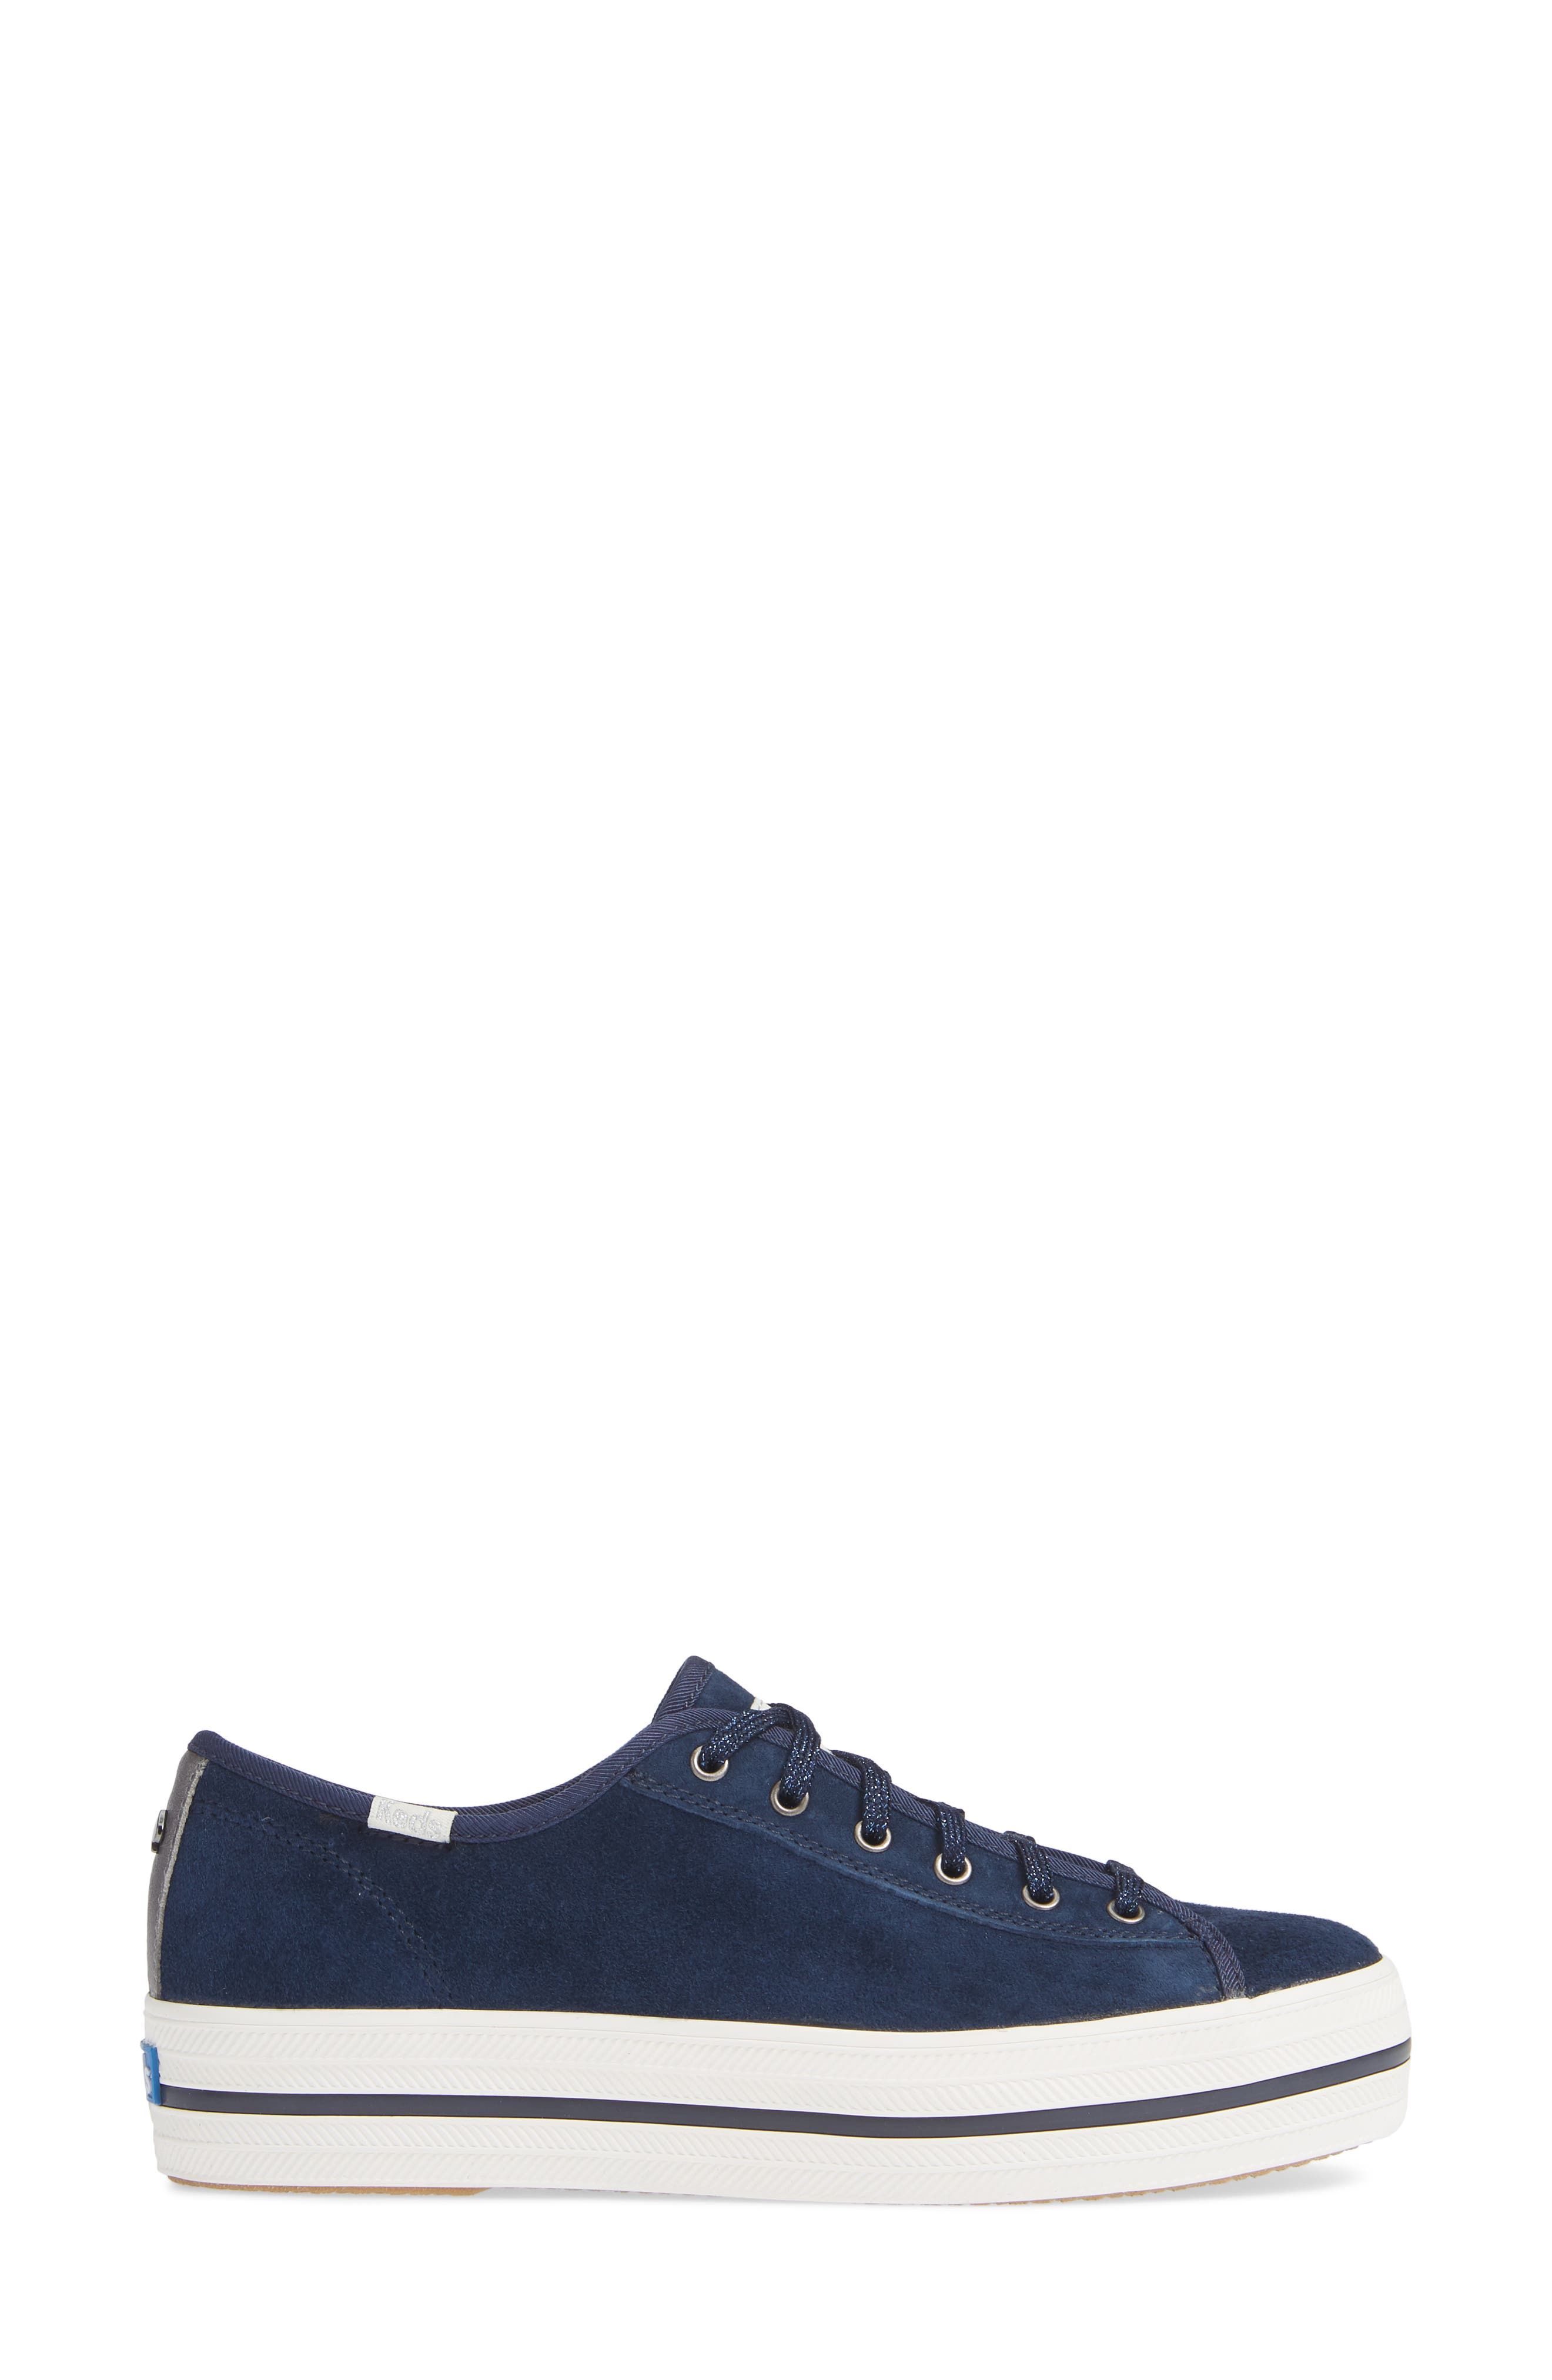 KEDS<SUP>®</SUP> FOR KATE SPADE NEW YORK, Keds<sup>®</sup> x kate spade new york triple kicks platform sneaker, Alternate thumbnail 3, color, NAVY SUEDE